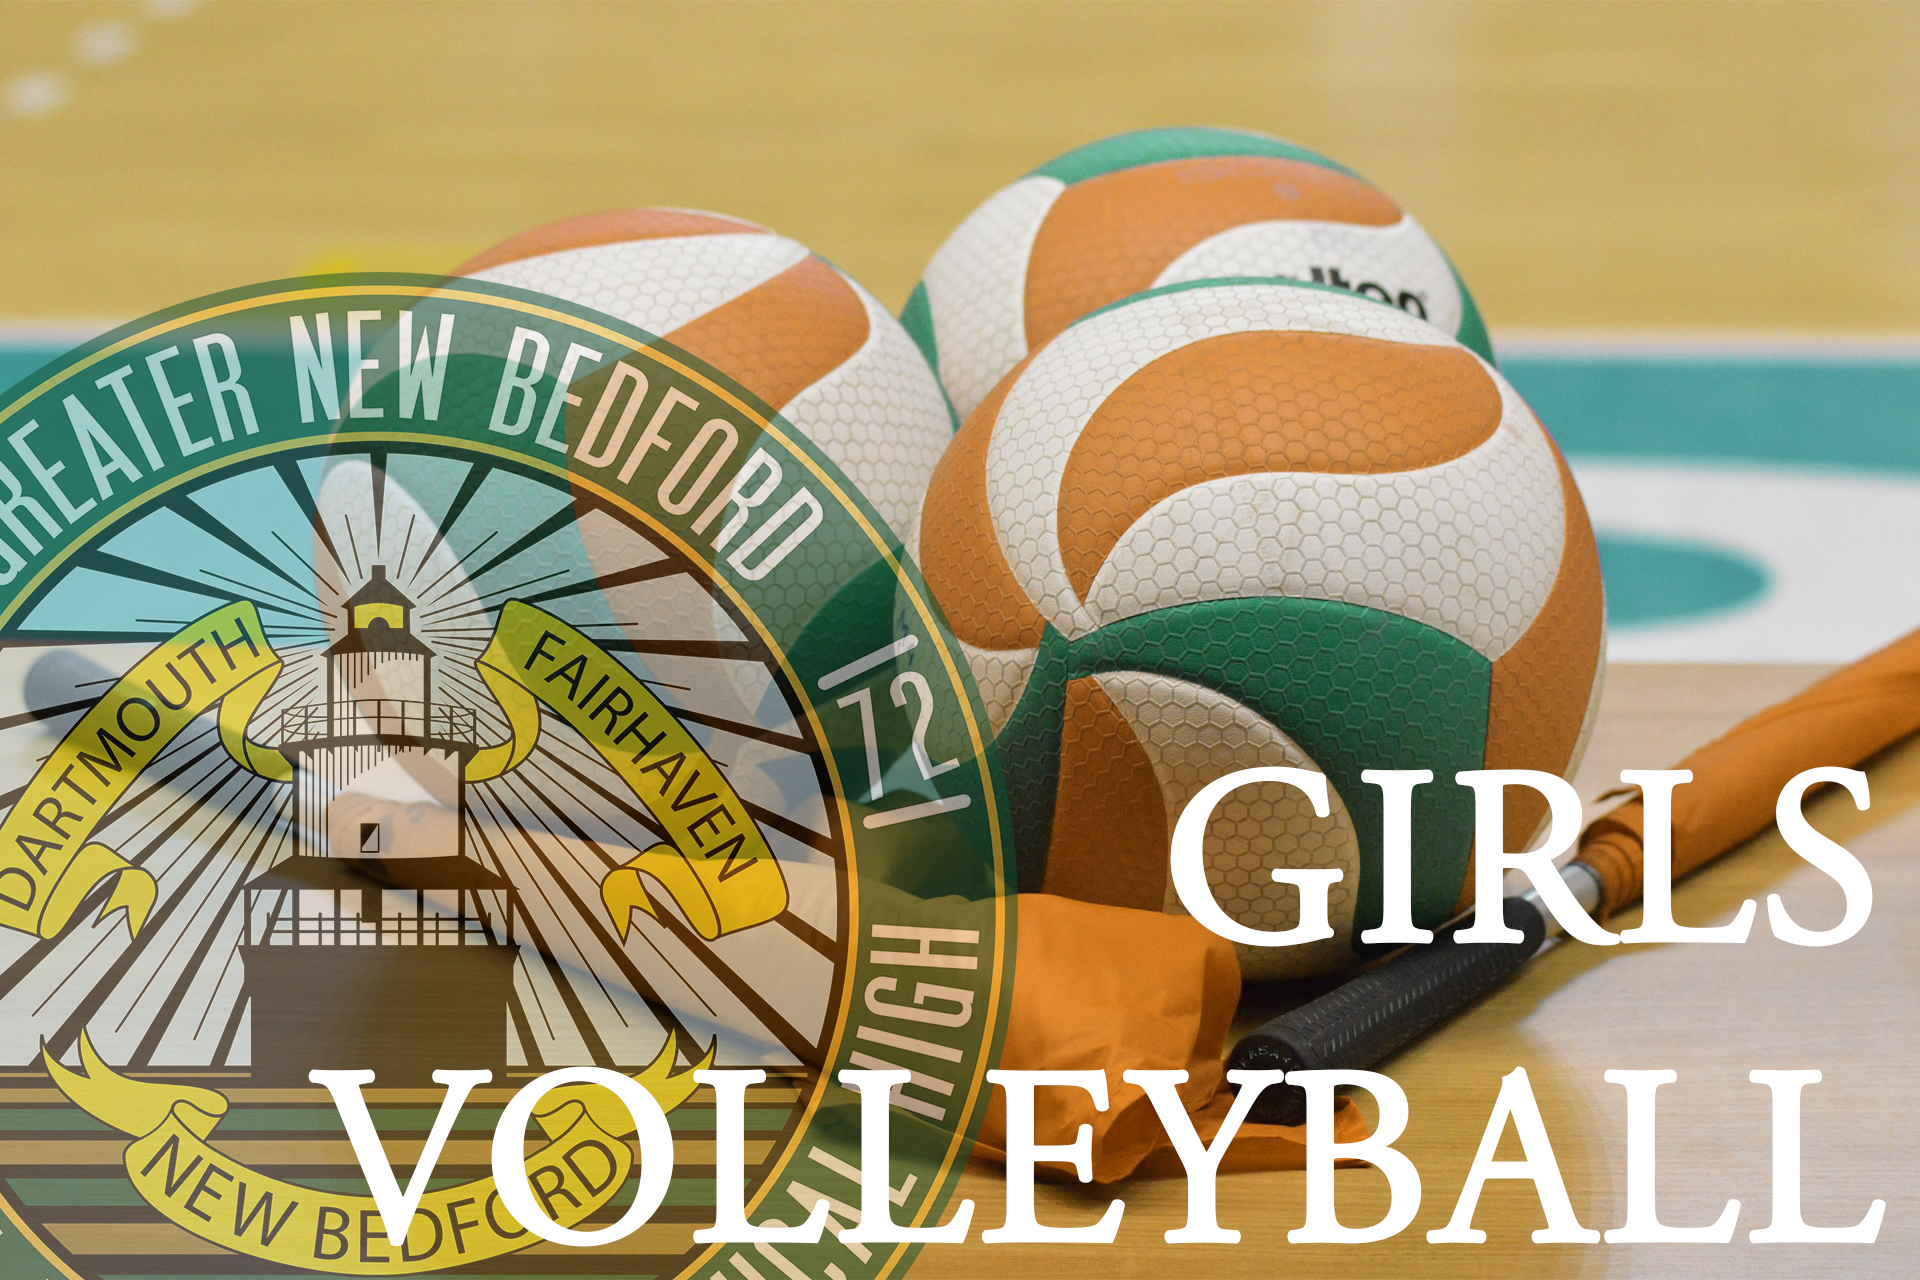 Fall Sports Girls Volleyball image with gnbvt logo faded on left